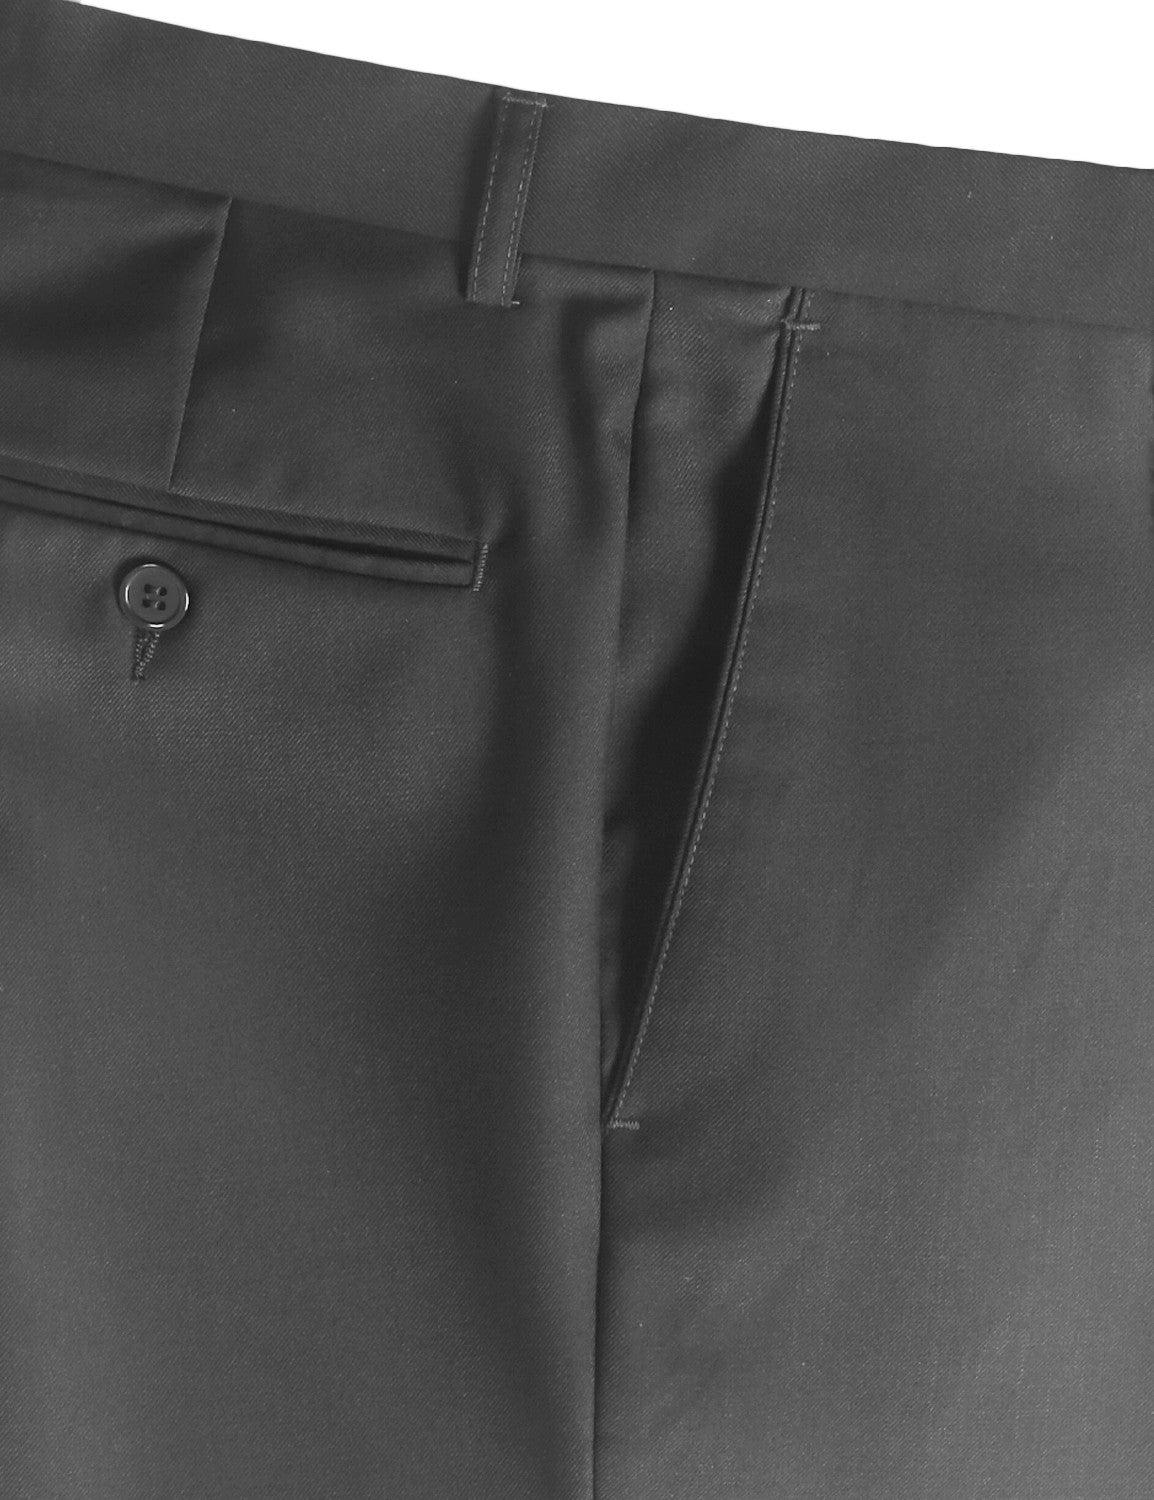 03GRY Modern Fit Flat Front Dress Trousers- MONDAYSUIT